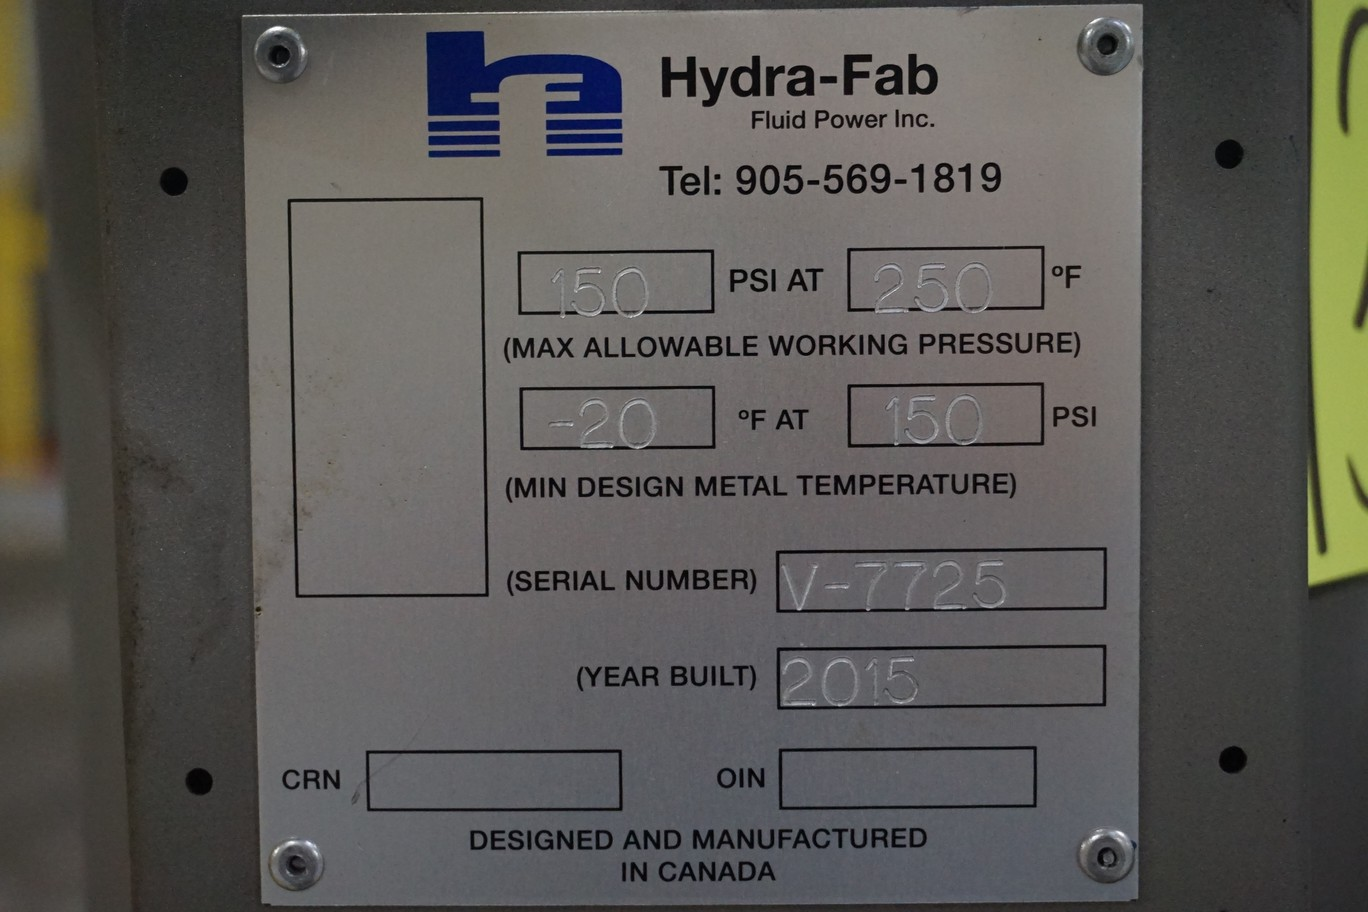 Hydra-Fab Fluid Power, 150 Psi Cylinder - Image 2 of 2